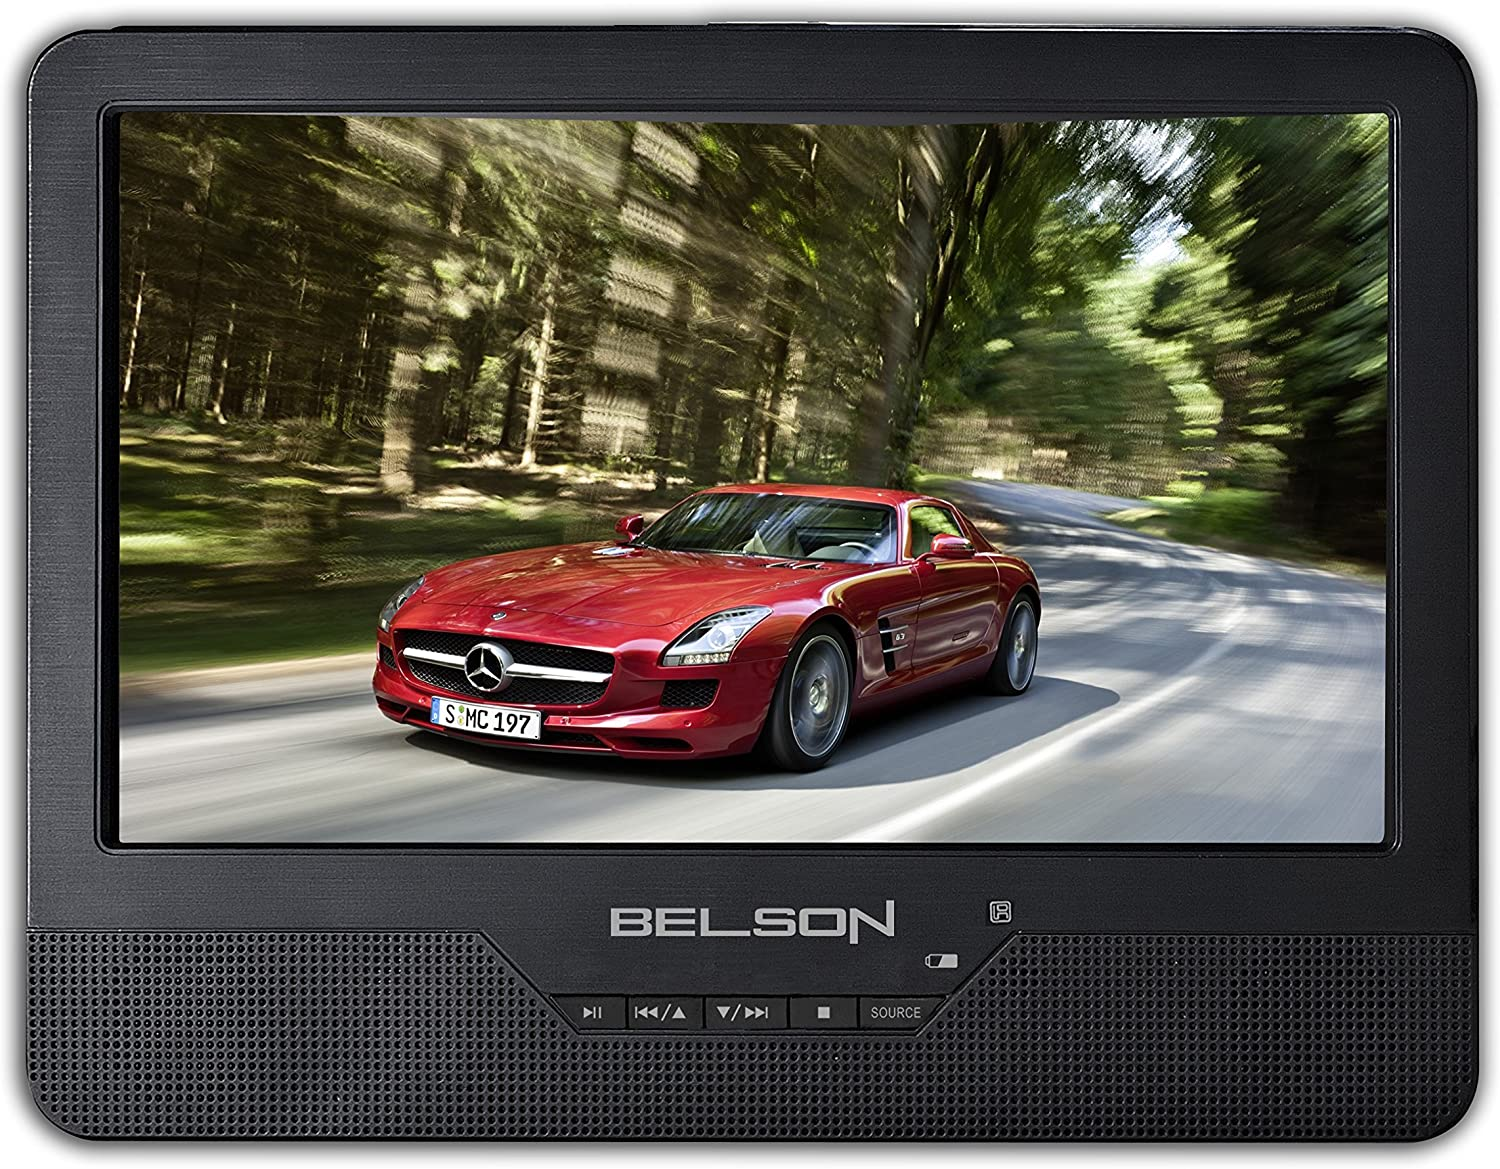 Belson BELBS-128 Reproductor Portatil para Coche, 9